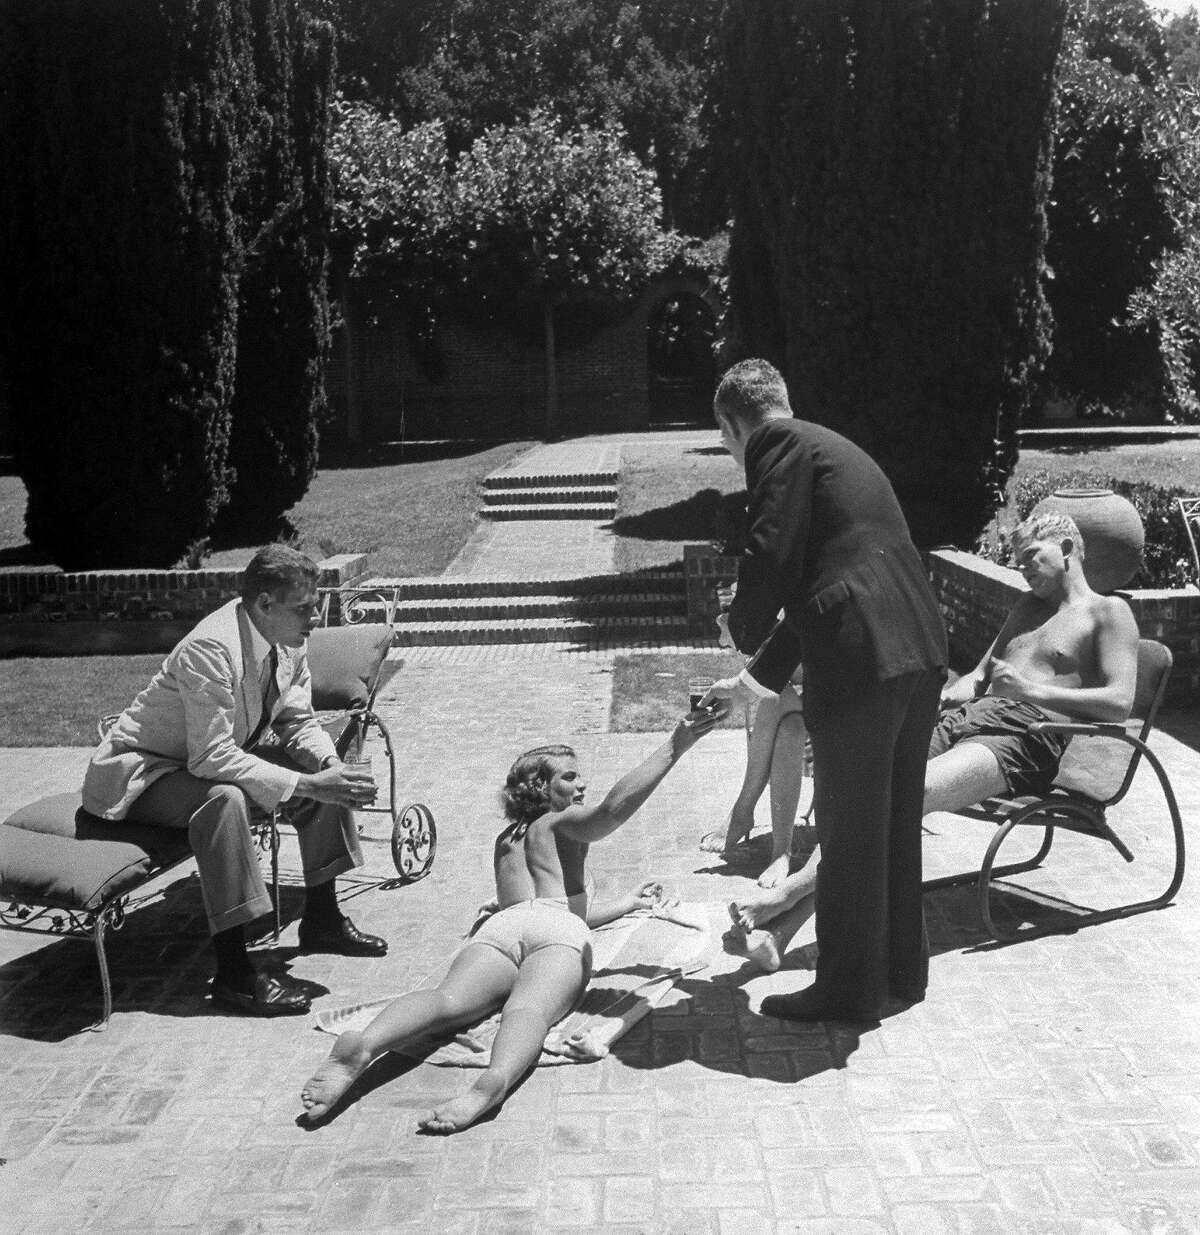 Simone Hotaling gets a drink from a butler at the Filoli estate pool in Woodside, California, 1947.